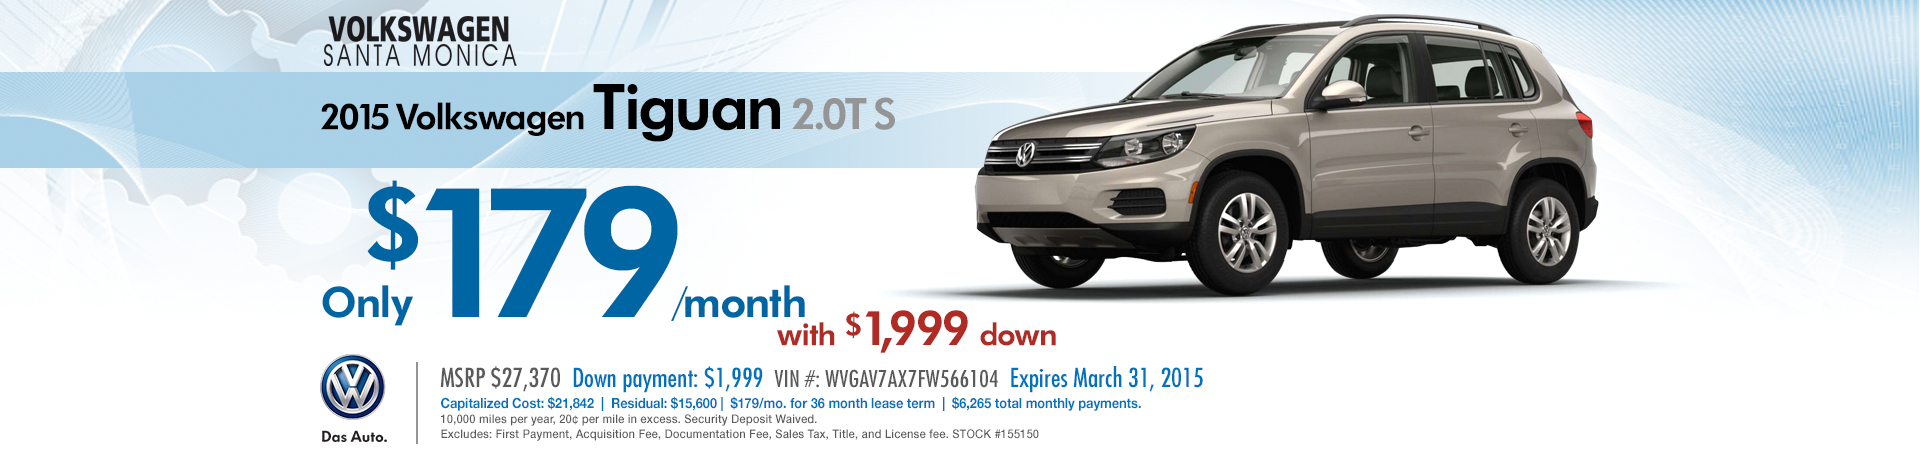 Volkswagen Santa Monica New 2015 Tiguan 2.0T S Discount Lease Special serving Hollywood & Beverly Hills, CA